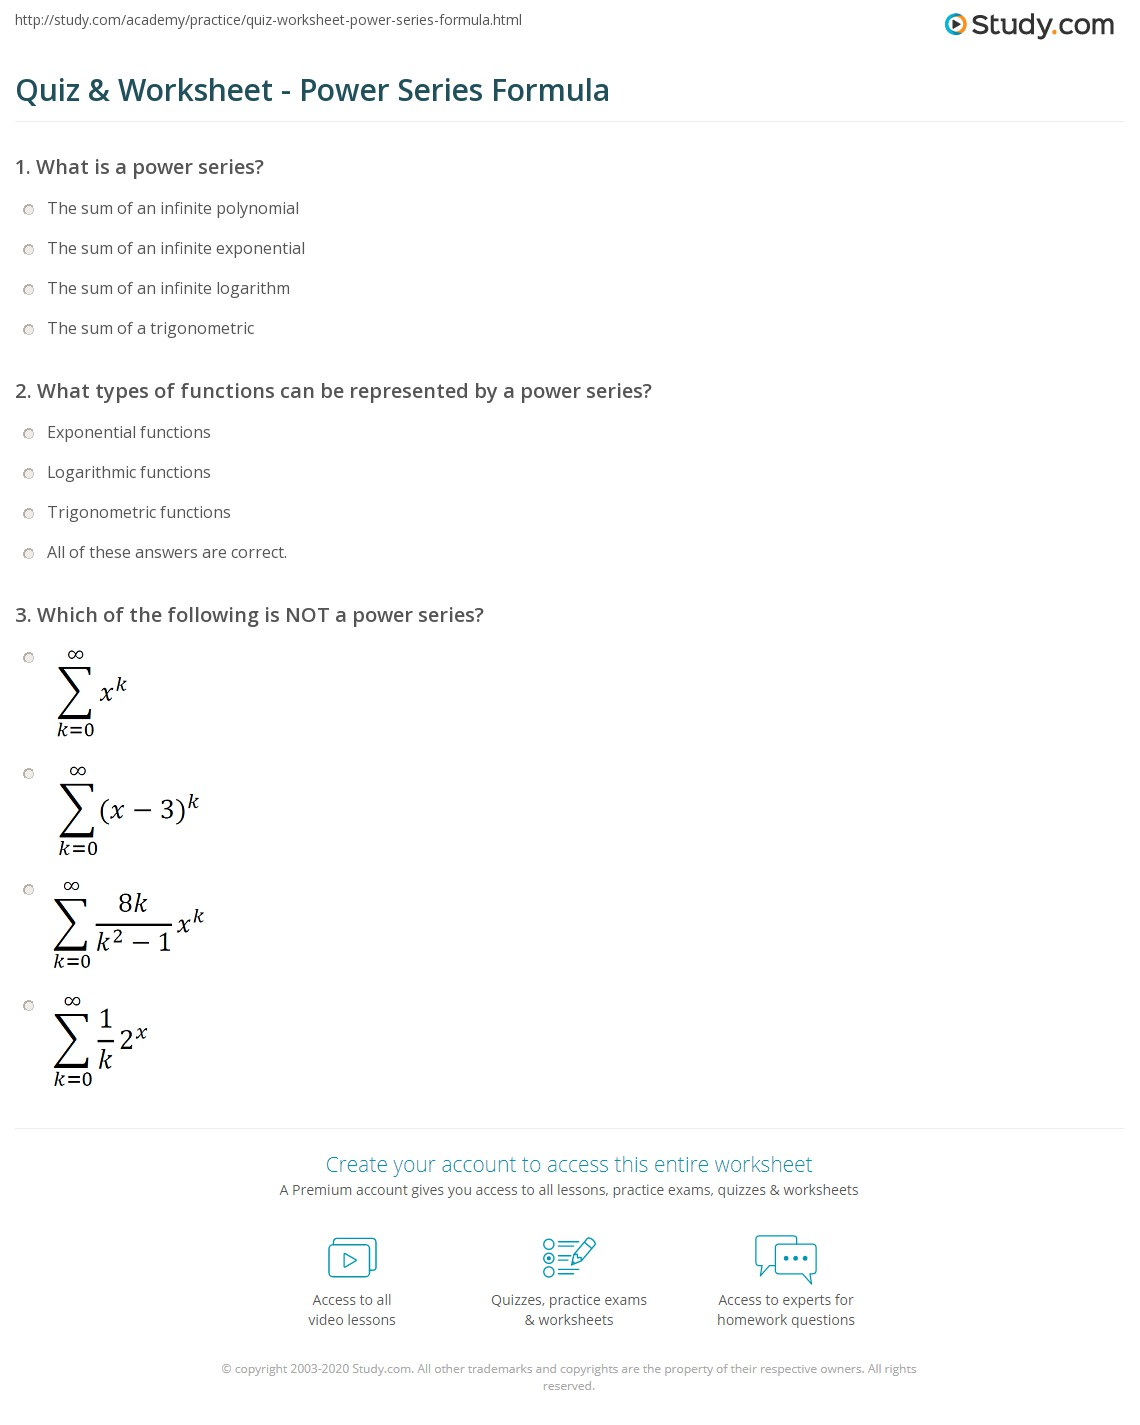 worksheet Power To A Power Worksheet quiz worksheet power series formula study com print examples worksheet